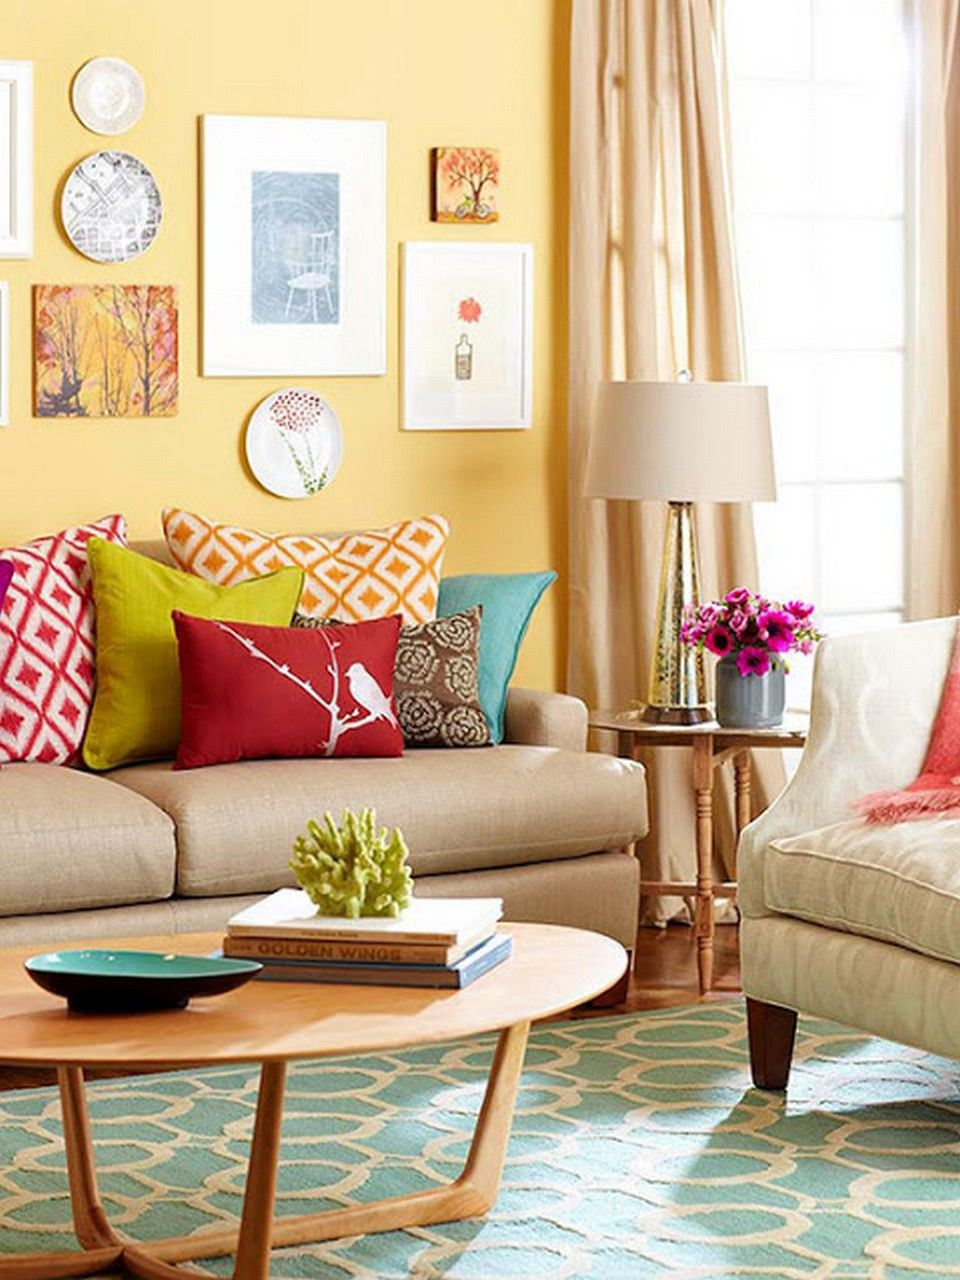 Cool 30 Bright And Colorful Living Room Design Ideas Https Homedecort Com 2017 04 Brigh Colorful Living Room Design Casual Living Rooms Colourful Living Room Familyfriendly living room color